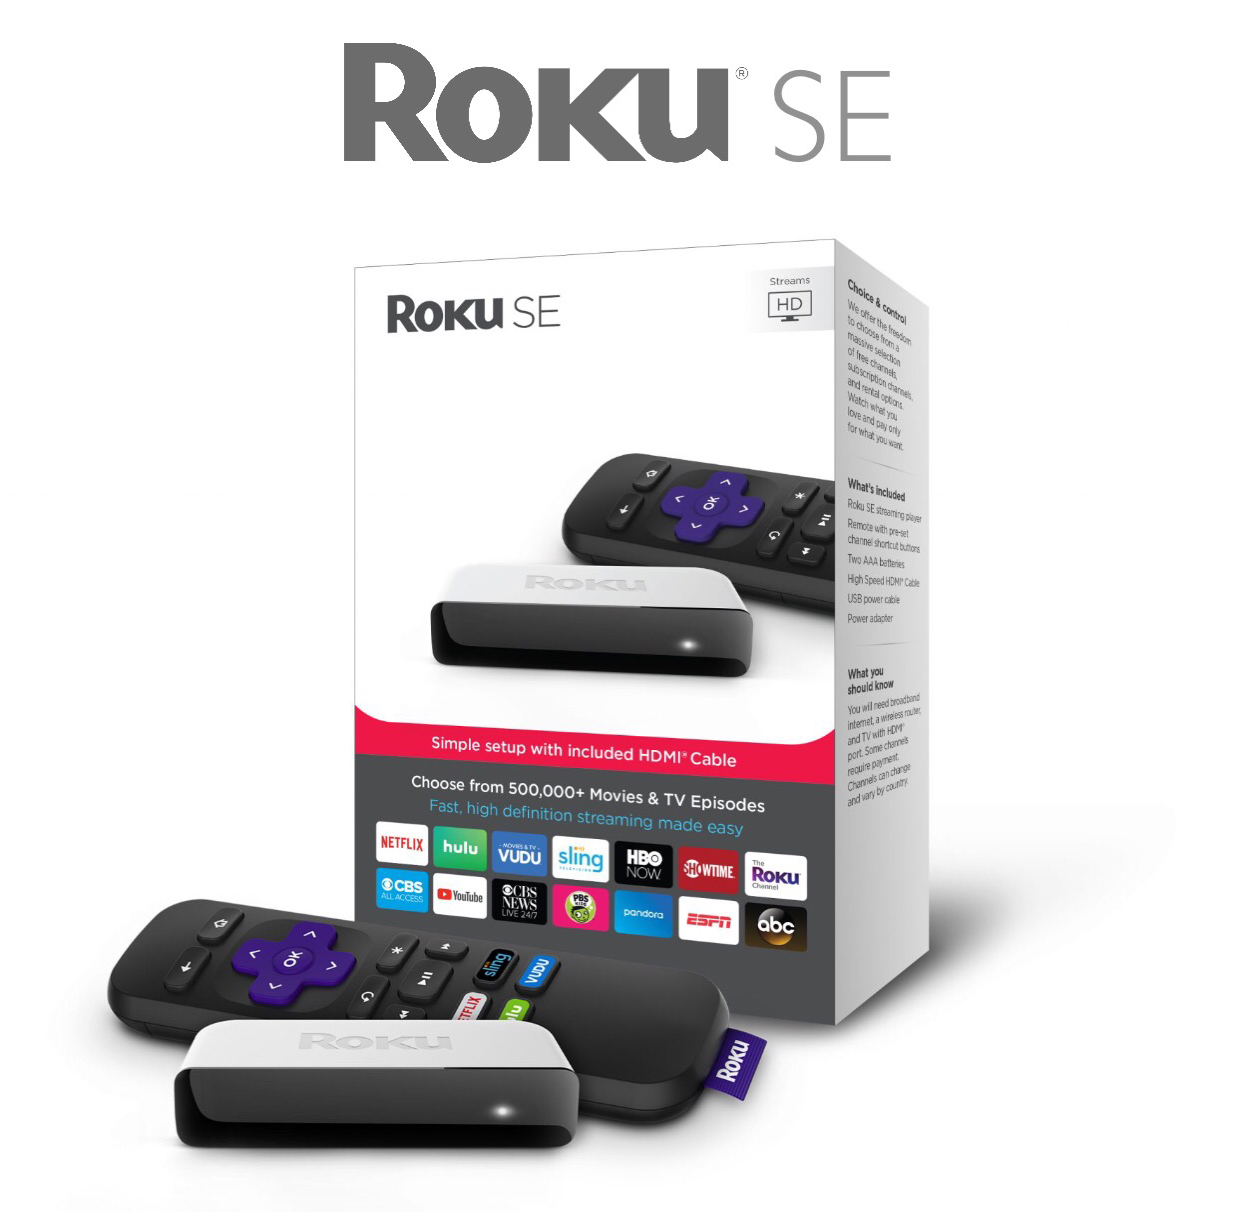 Roku SE (3900SE) Special Edition HD Media Streaming Device